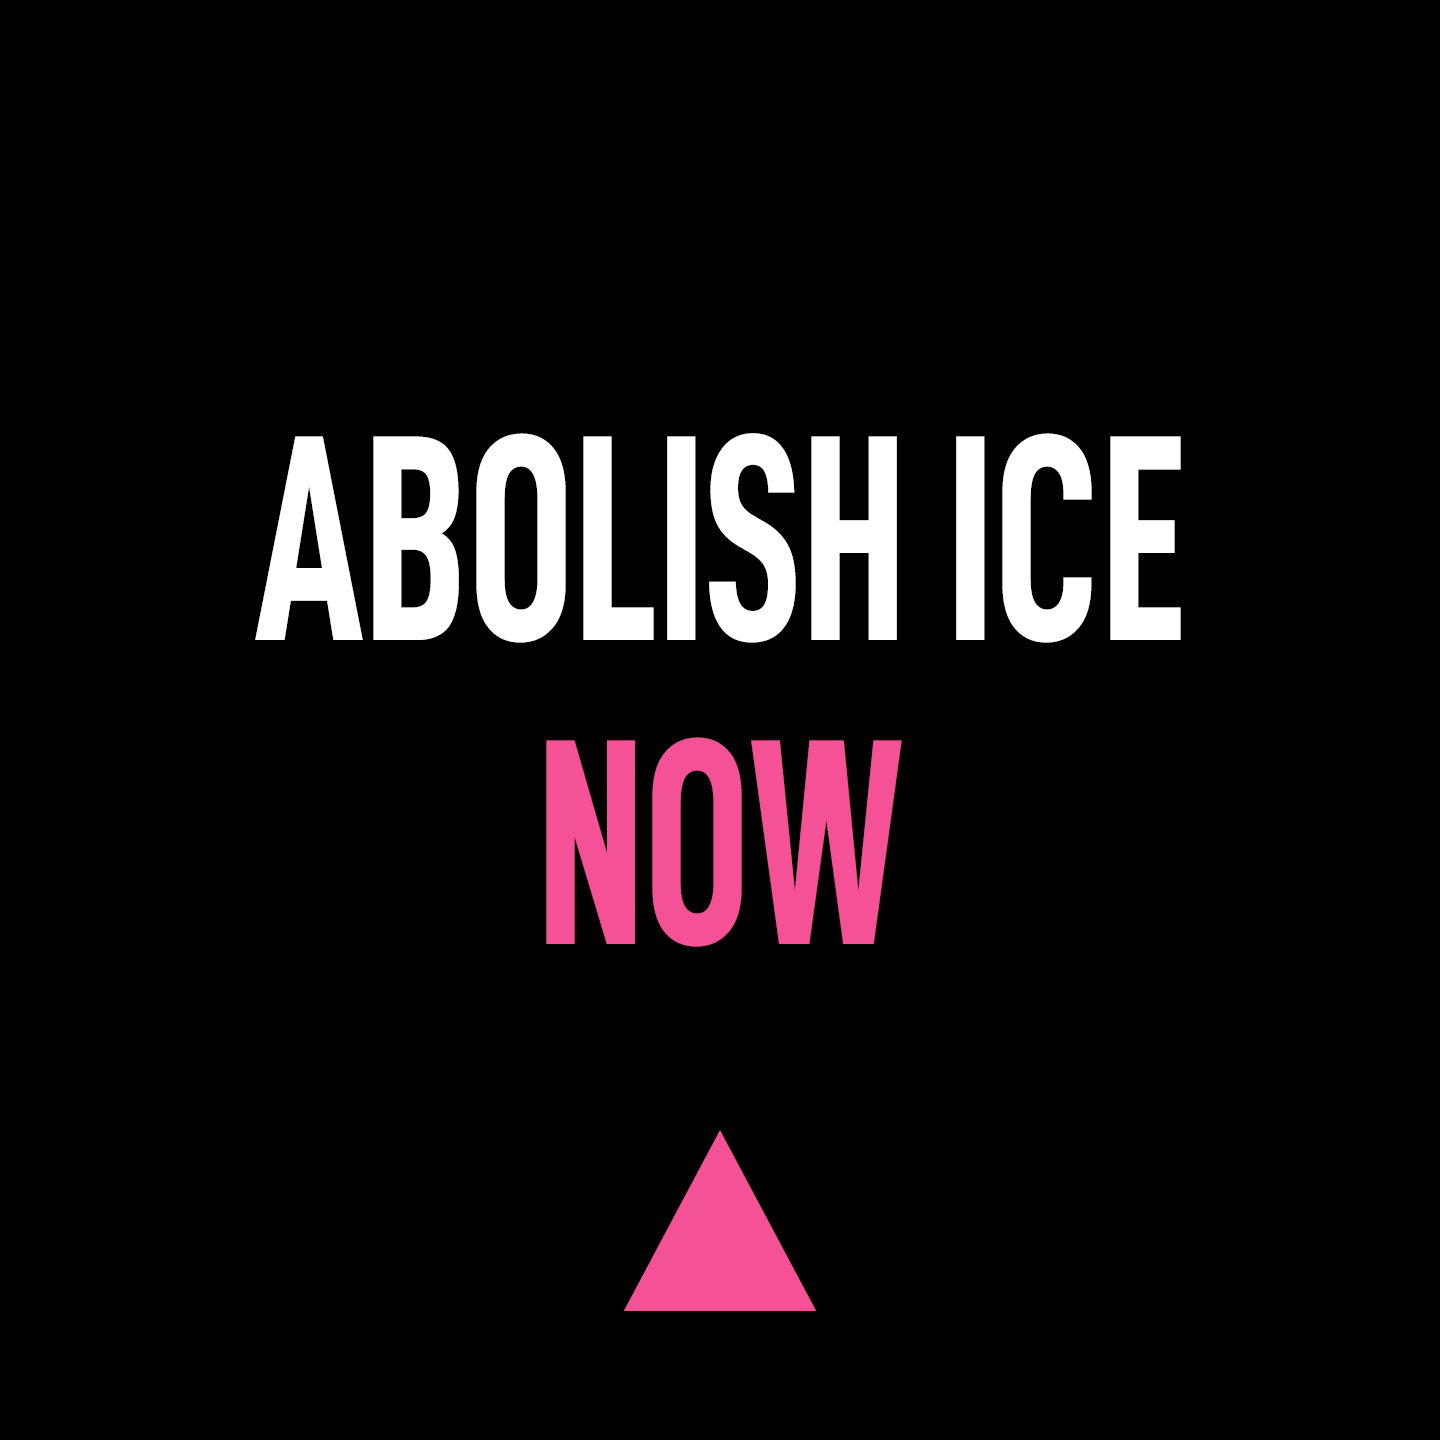 [RPC] Abolish ICE Now.png